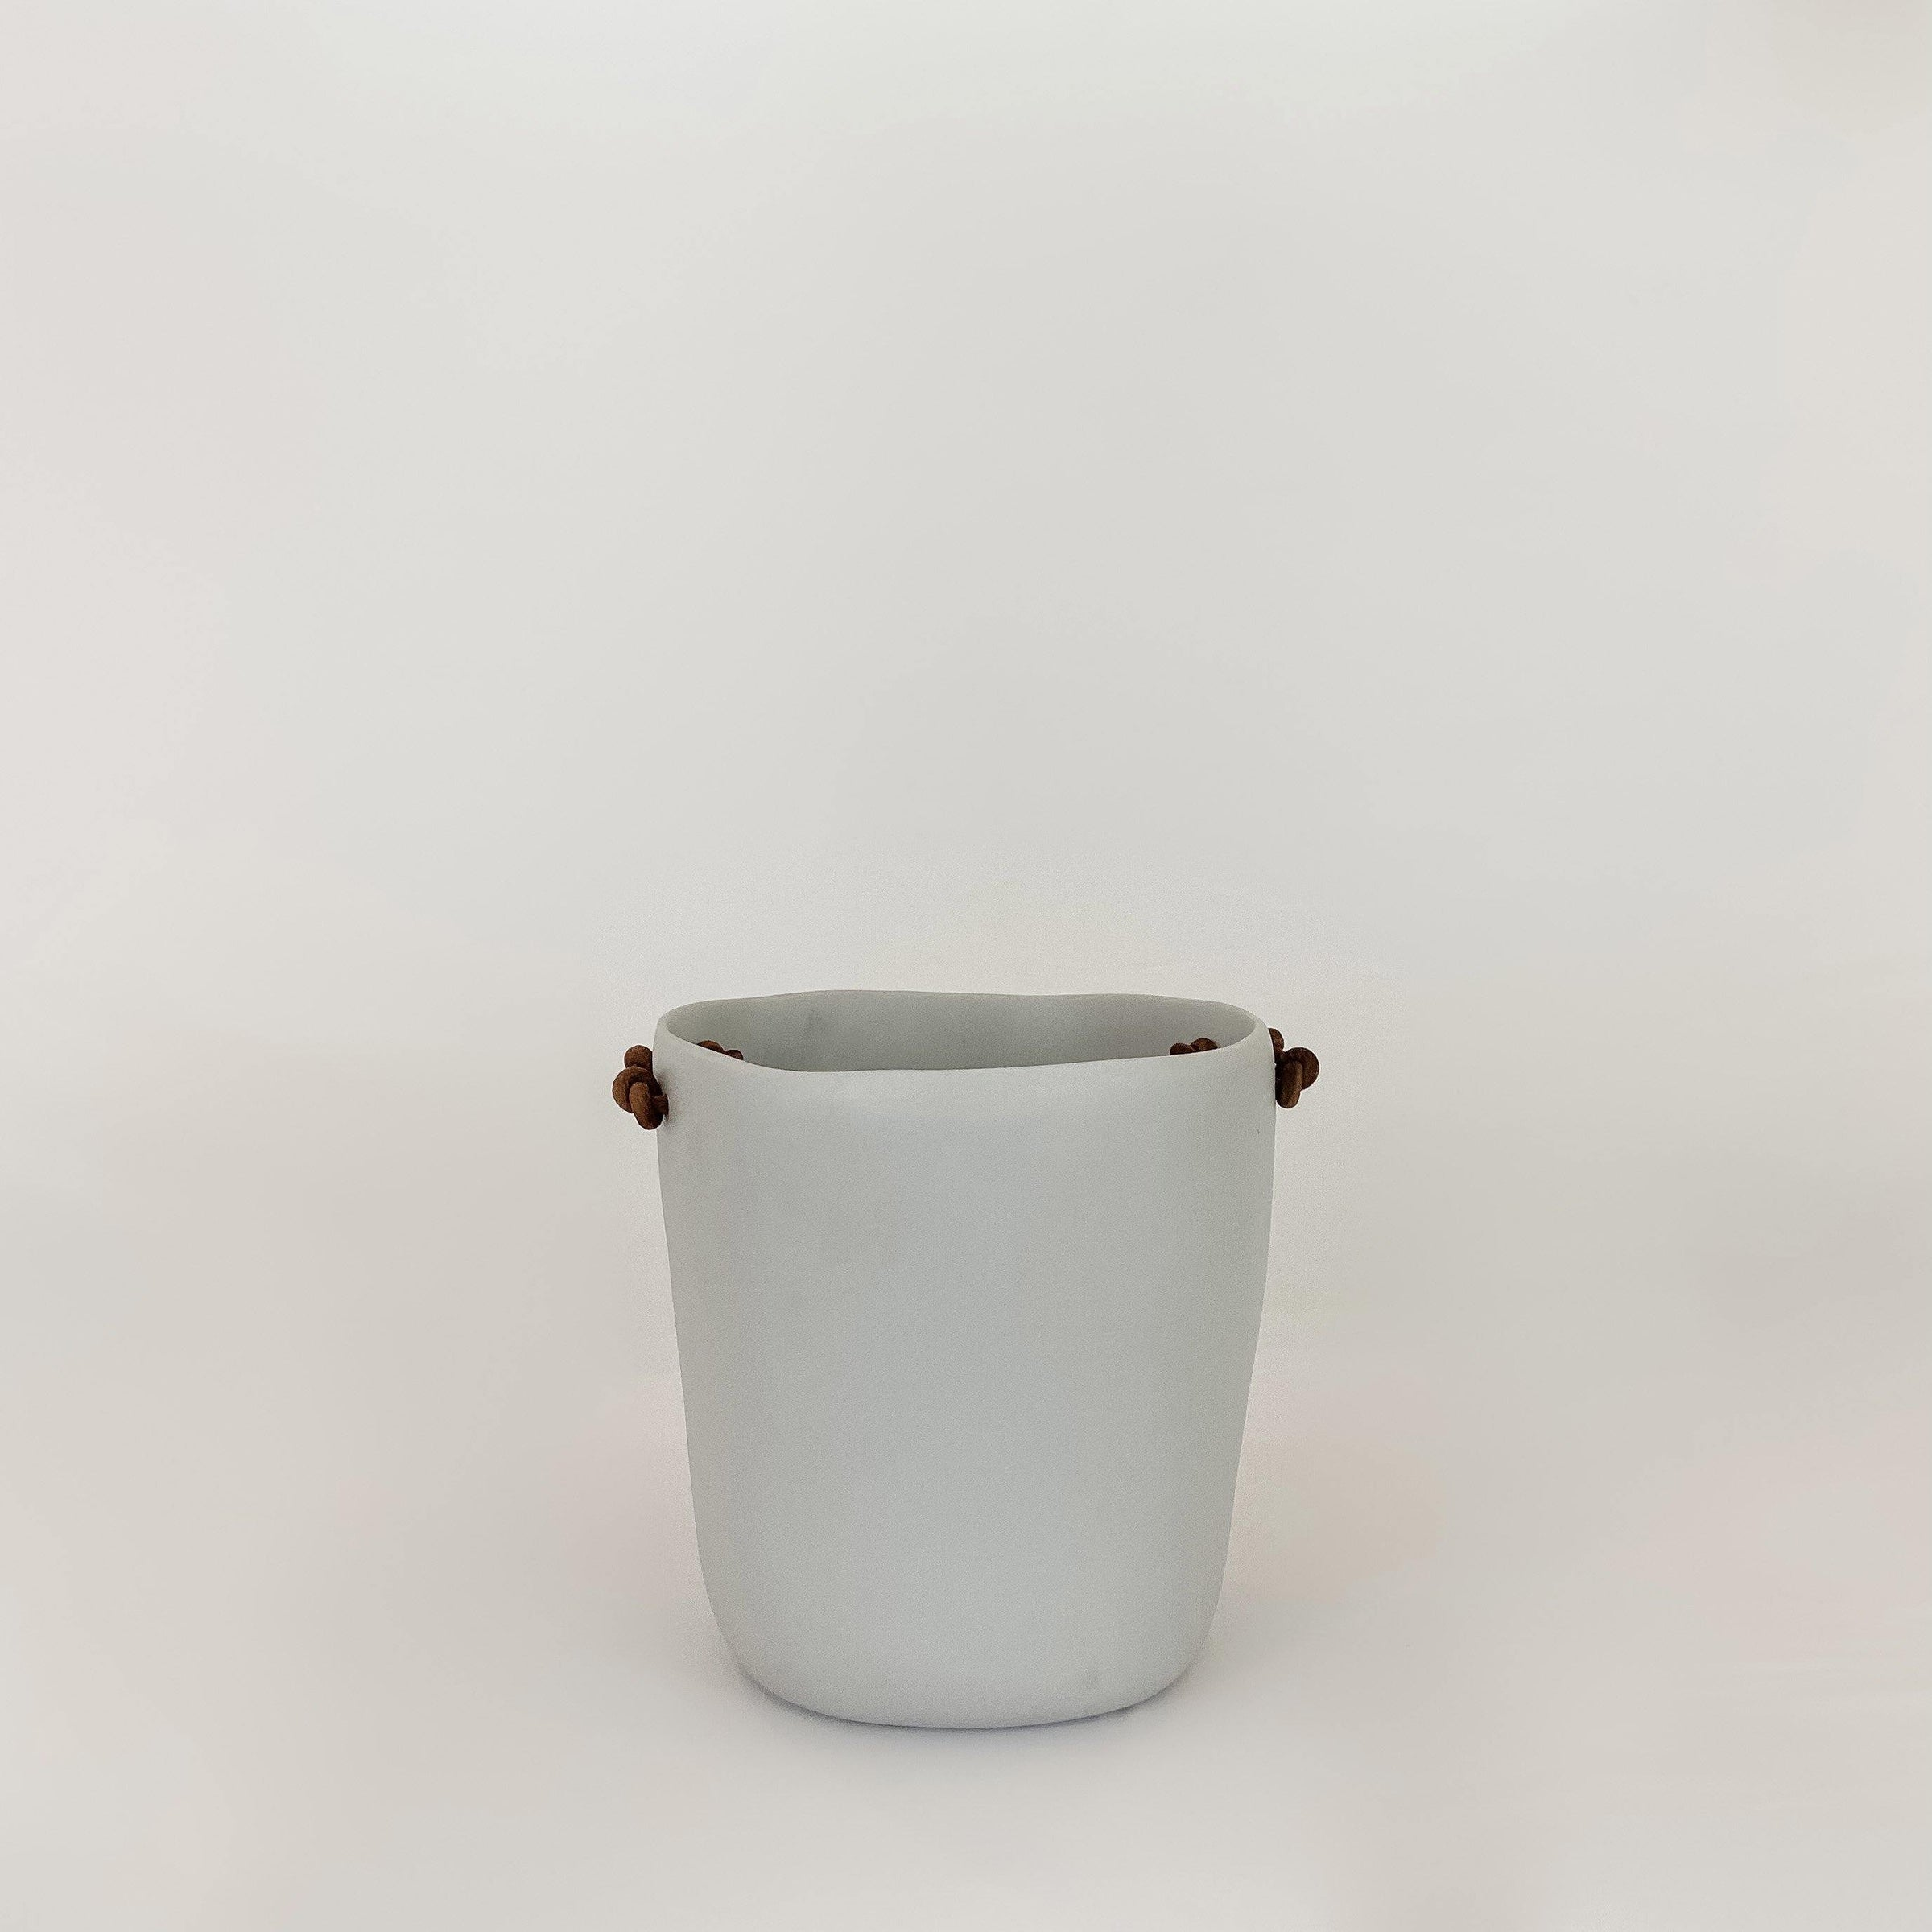 Champagne Bucket with Leather Handles - Cement